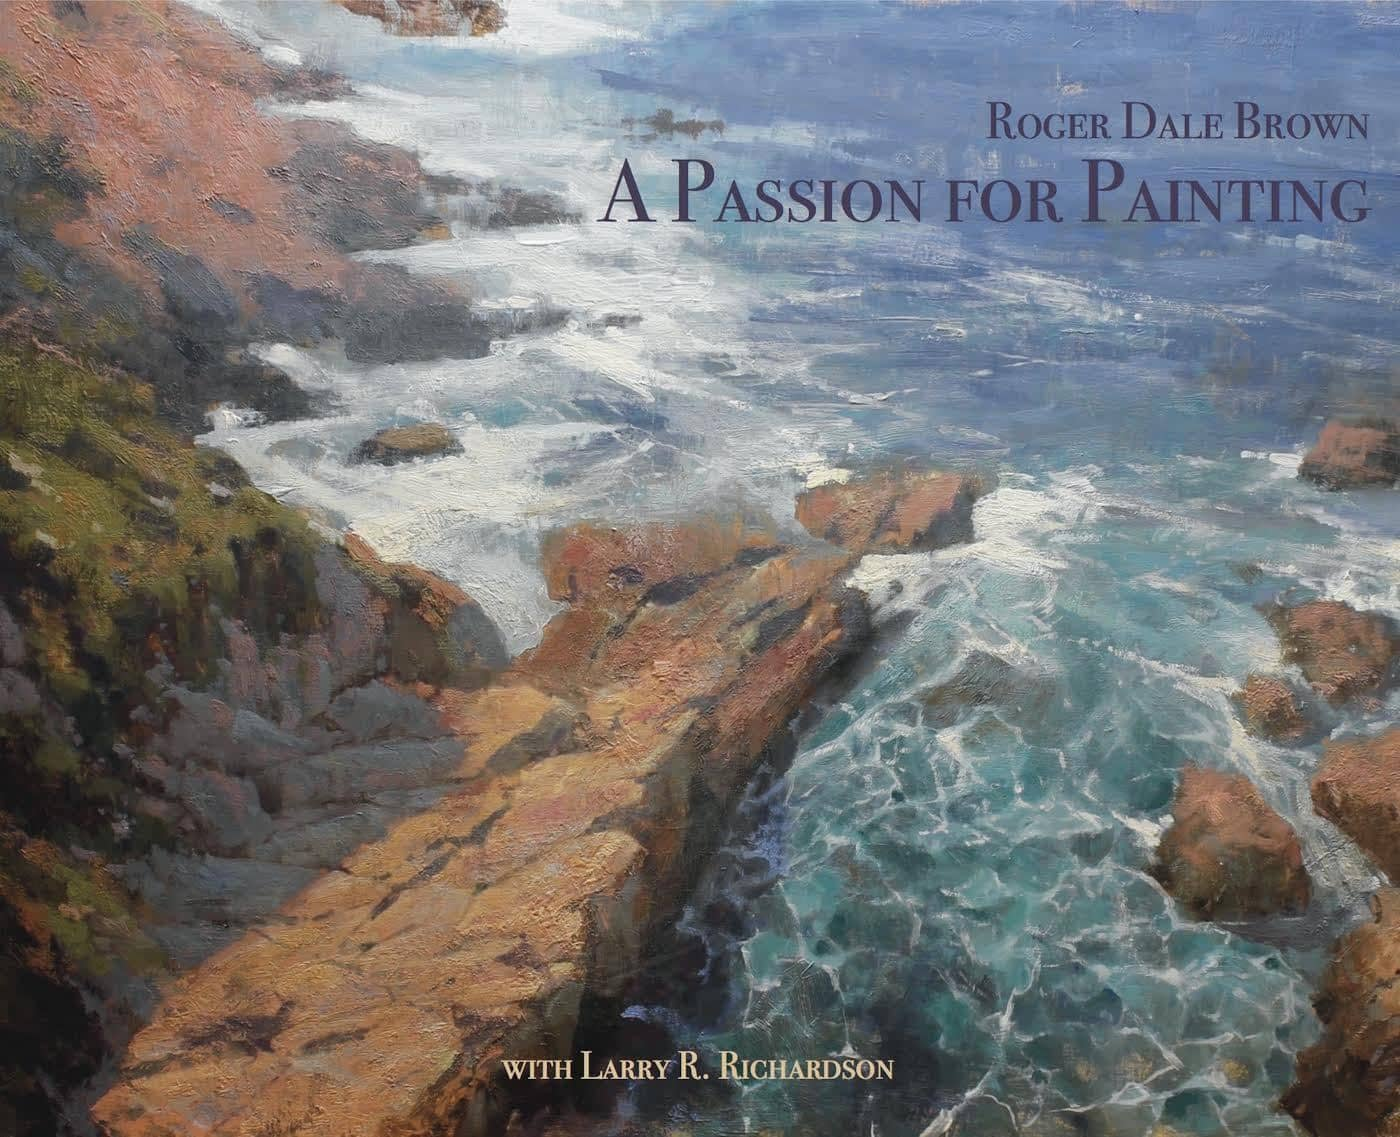 Roger Dale Brown: A Passion For Painting Hardcover Book